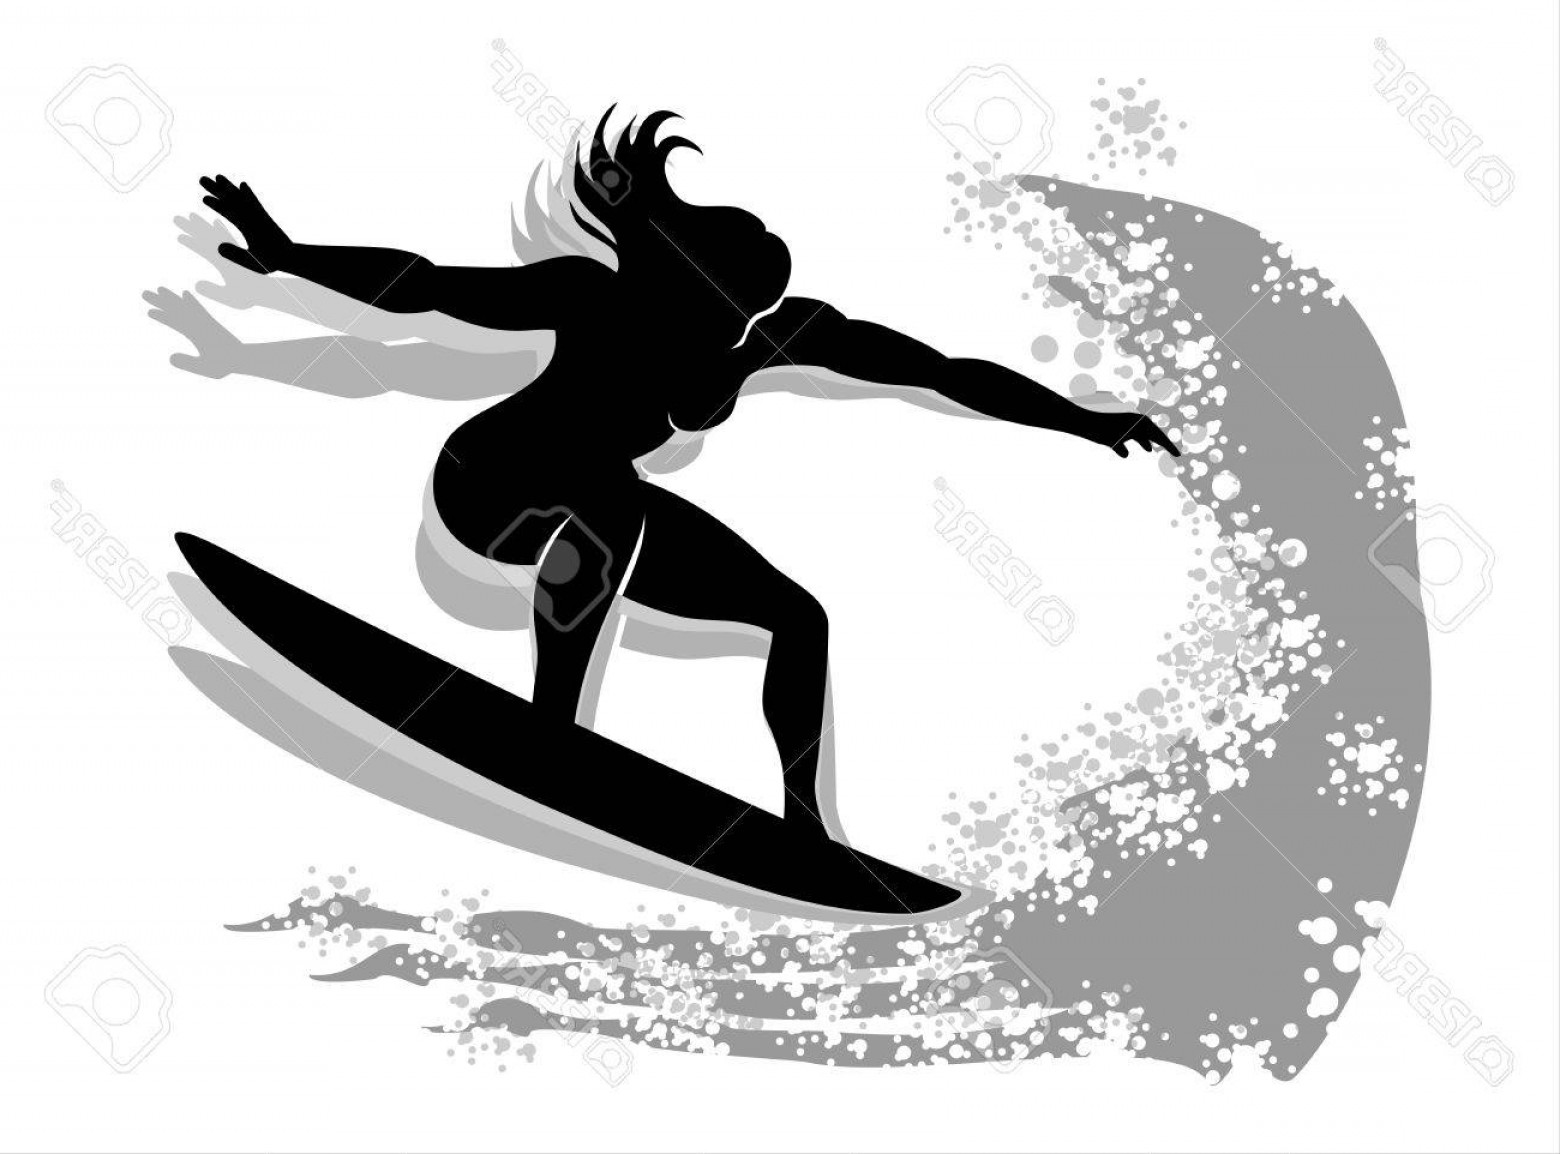 Waves With Surfer Silhouette Vector: Photostock Vector Woman Surfing Silhouette Isolated On White Background